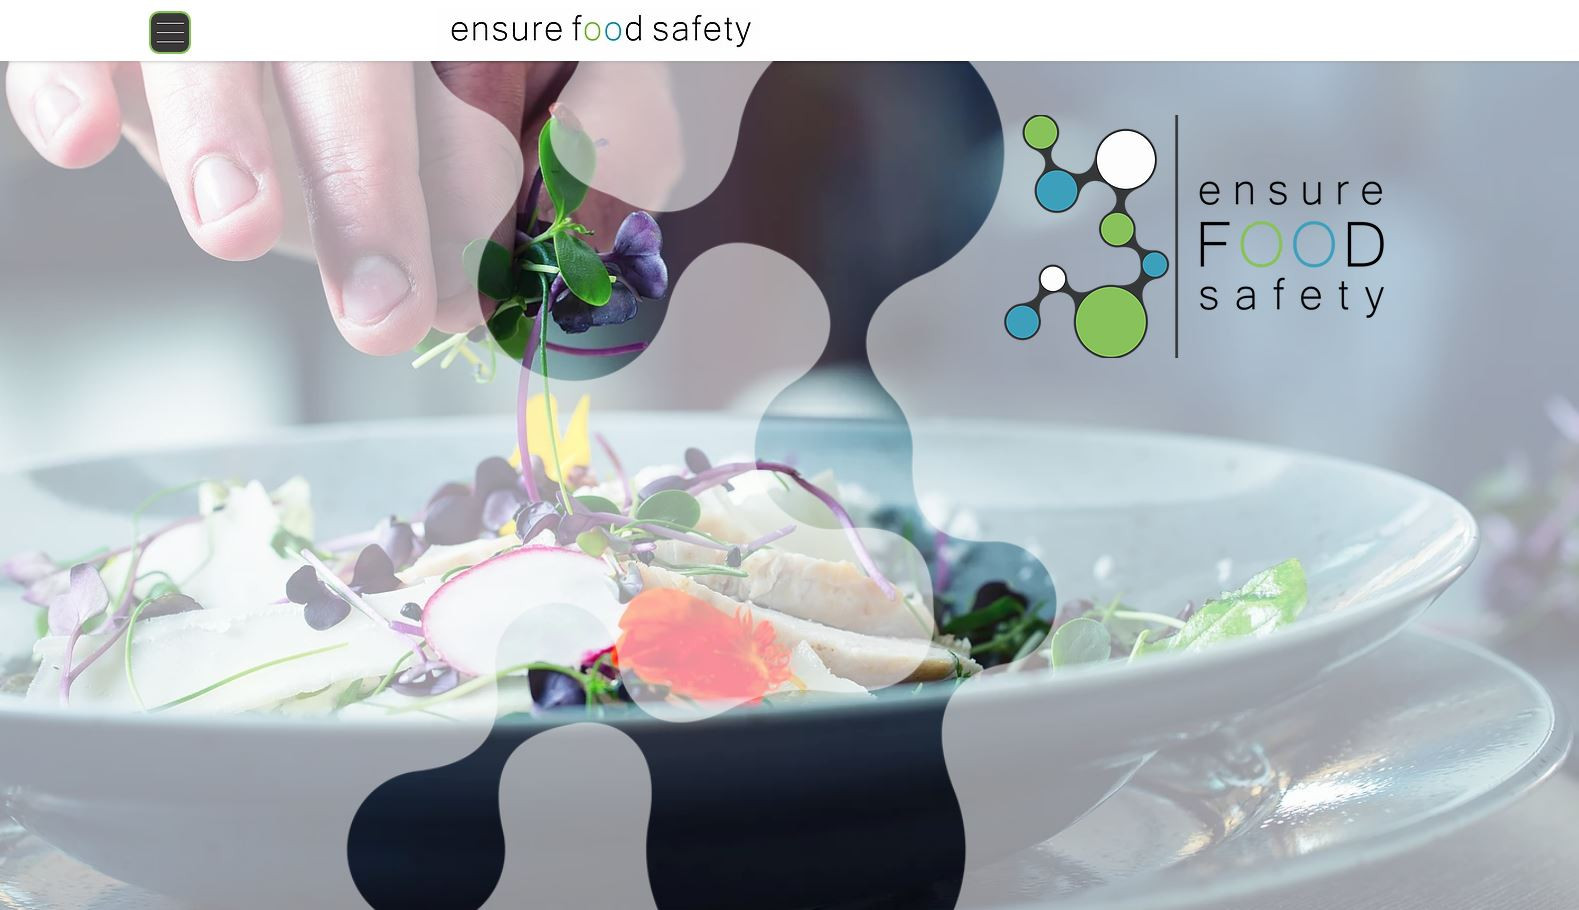 snsure food safety site pic.JPG